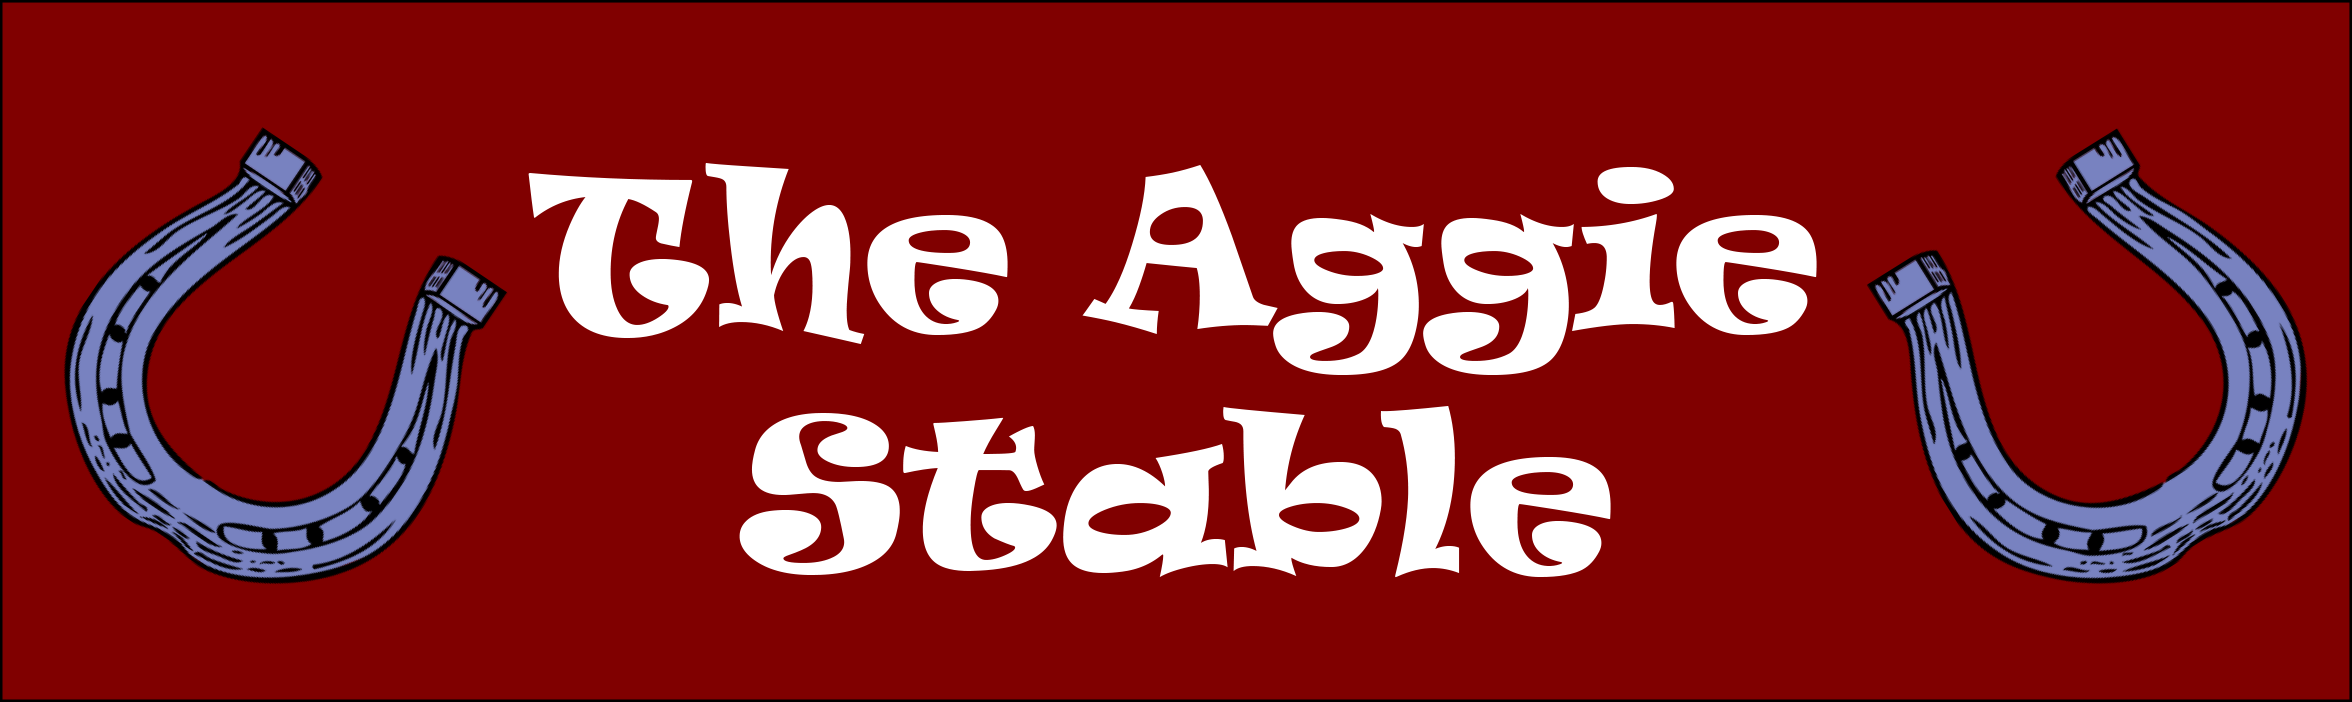 The-Aggie-Stable-sign